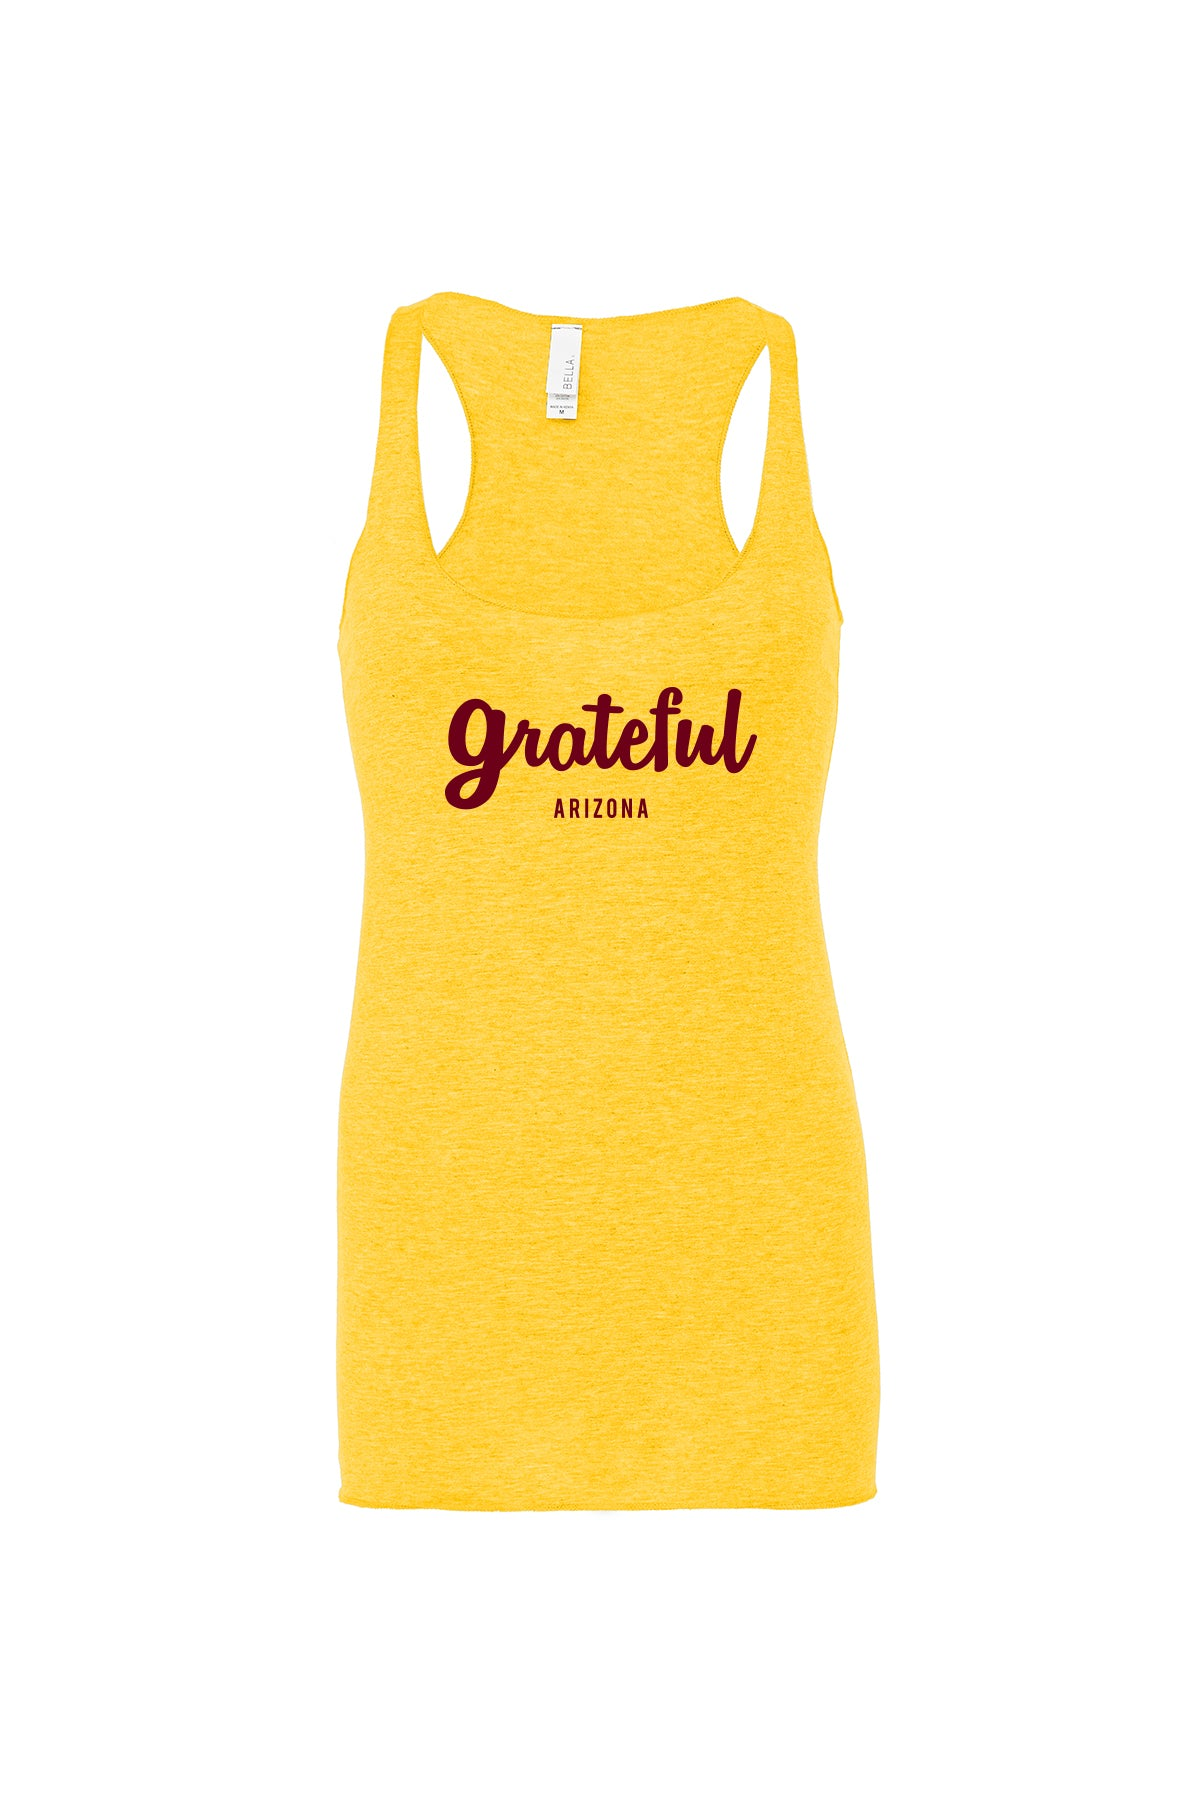 GRATEFUL ARIZONA RACERBACK TANK - GOLD